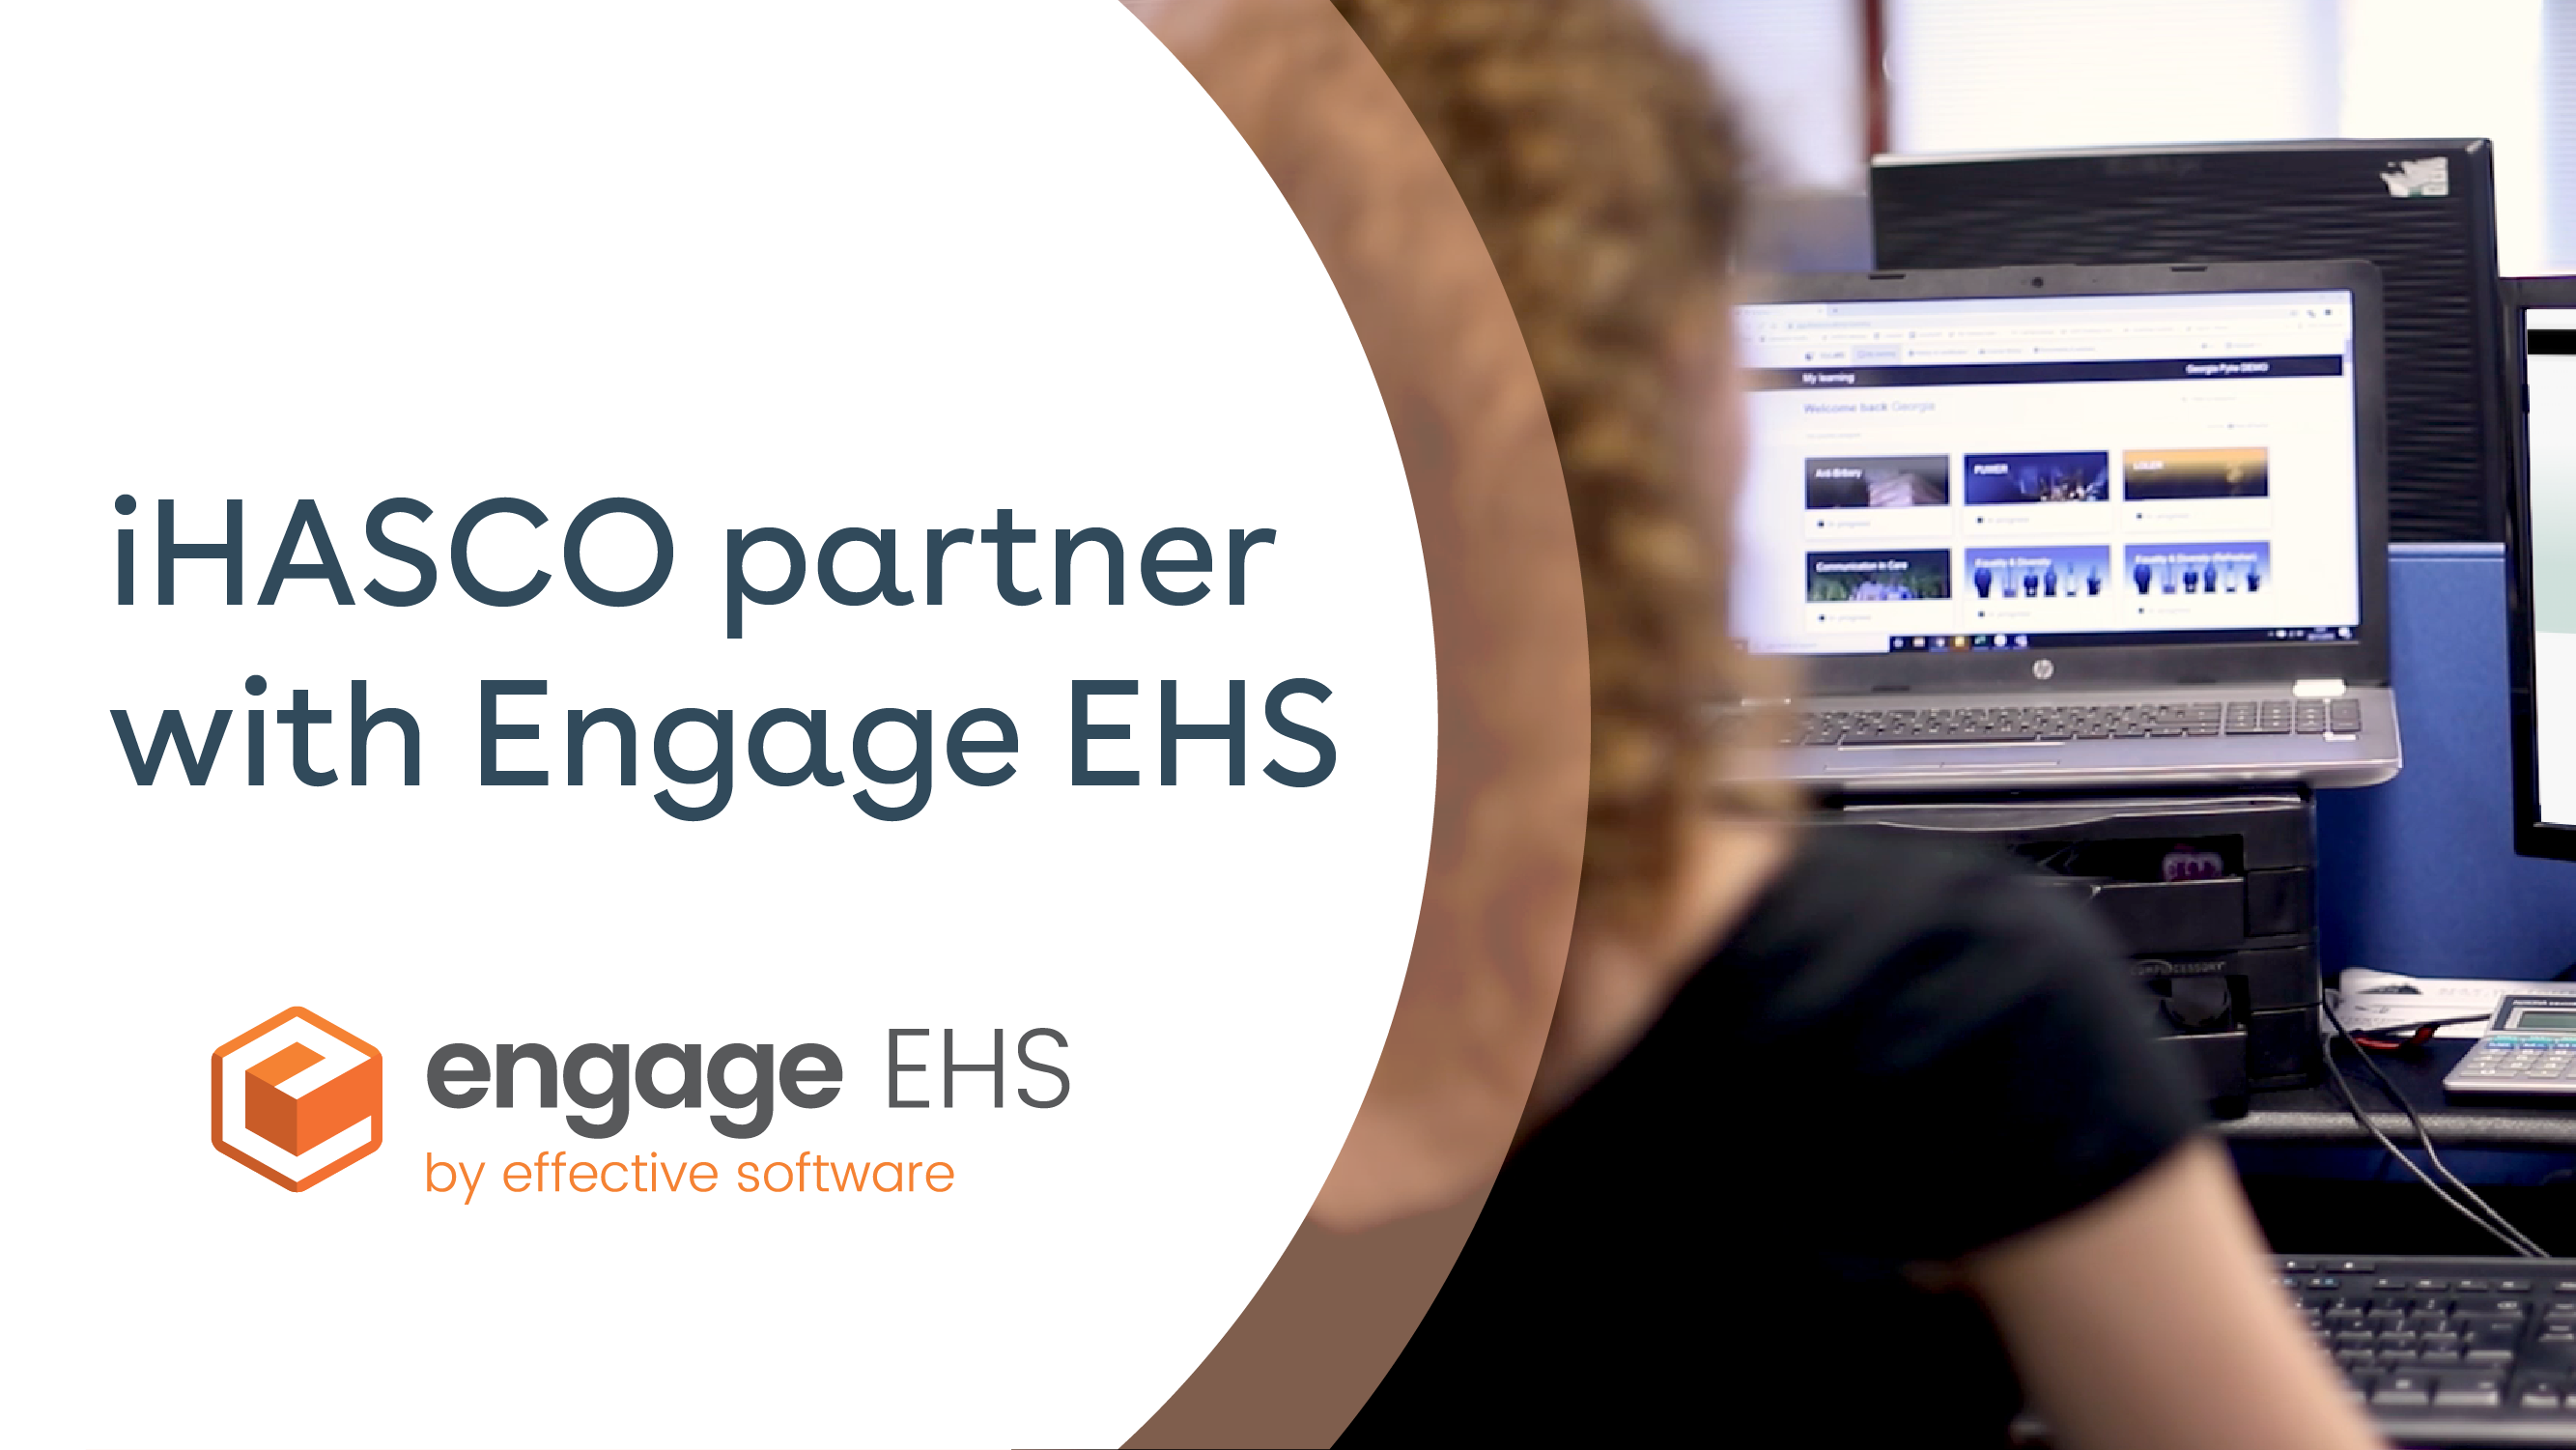 iHASCO have now partnered with Engage EHS